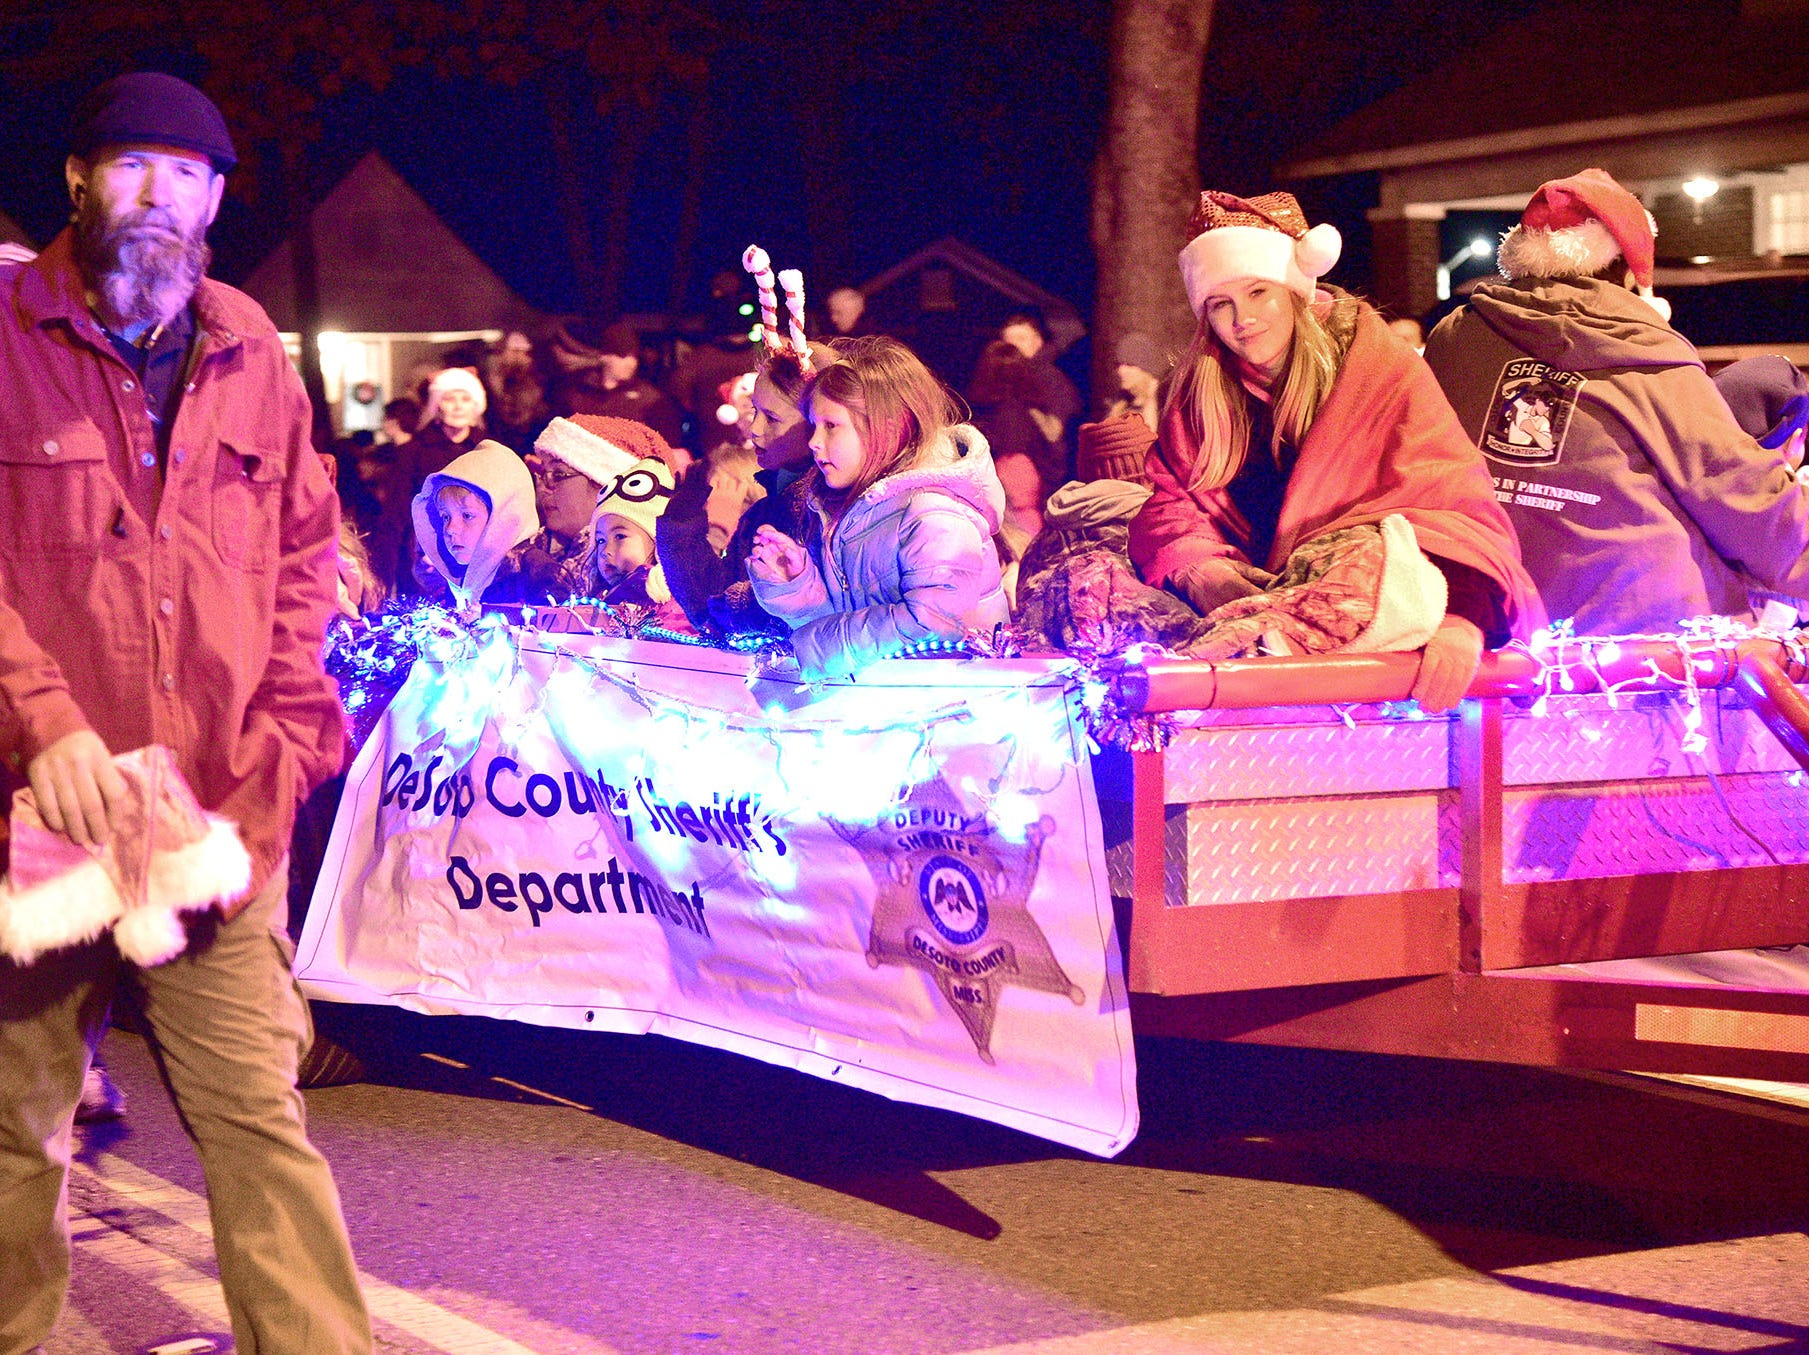 December 3, 2018 - Thousands gathered in Hernando on Monday evening to watch over 100 holiday decorated entries in the town's annual Christmas parade.